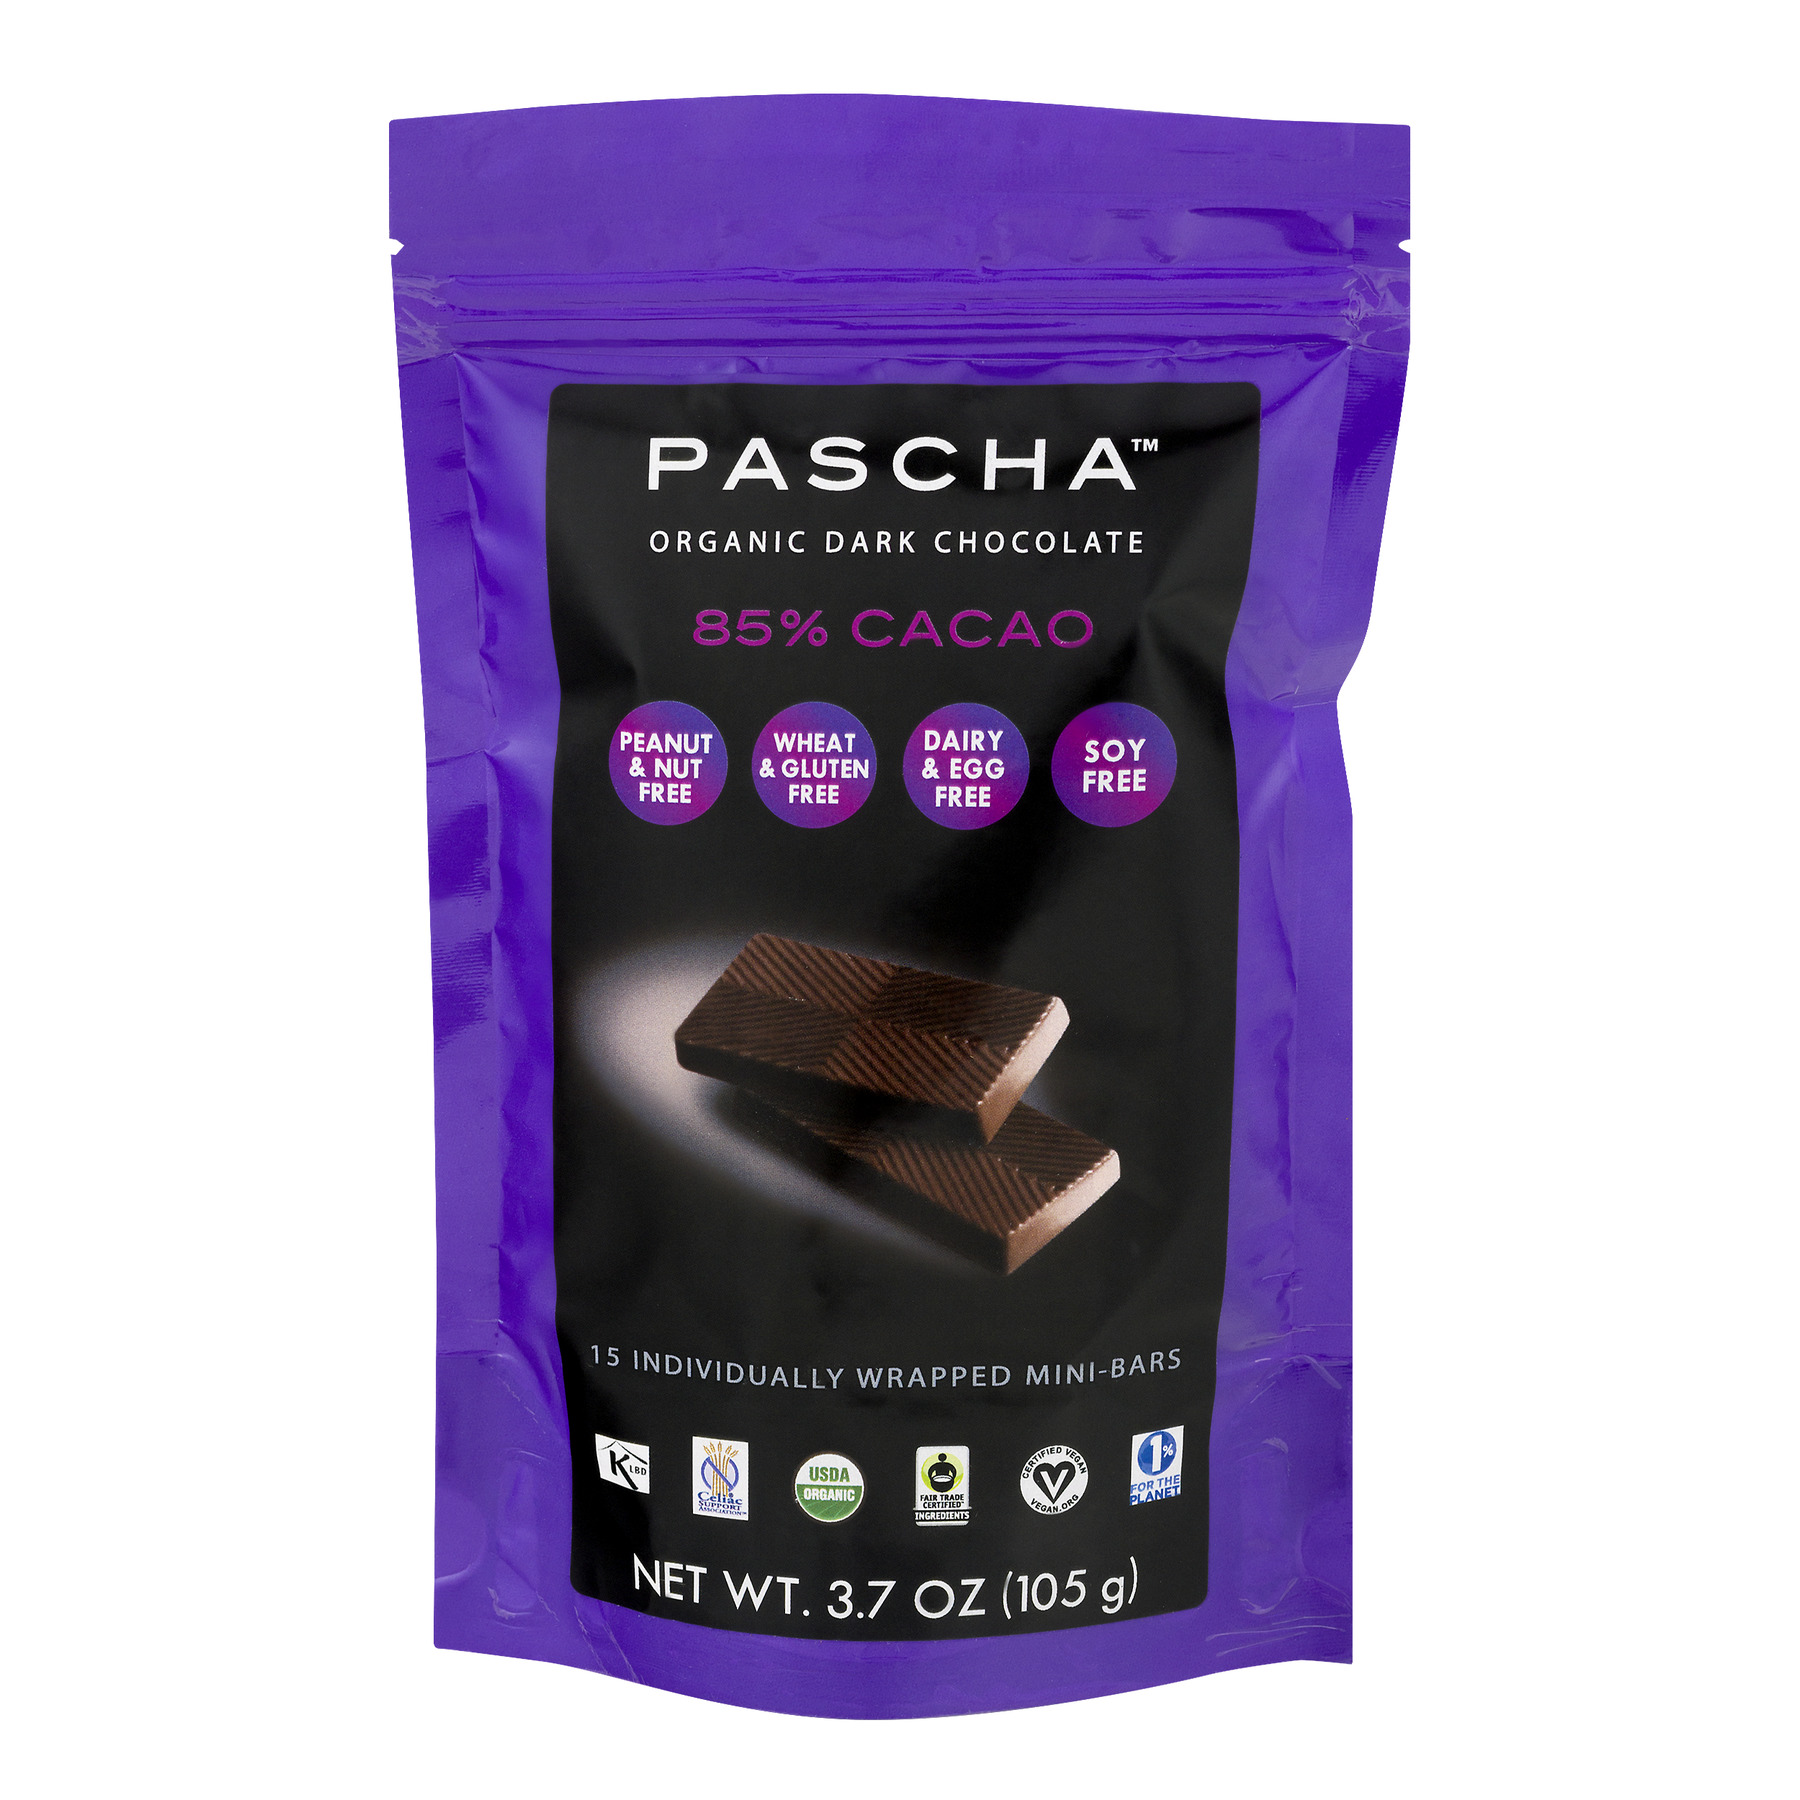 Pascha Organic Dark Chocolate 85% Cacao - 15 CT3.7 OZ